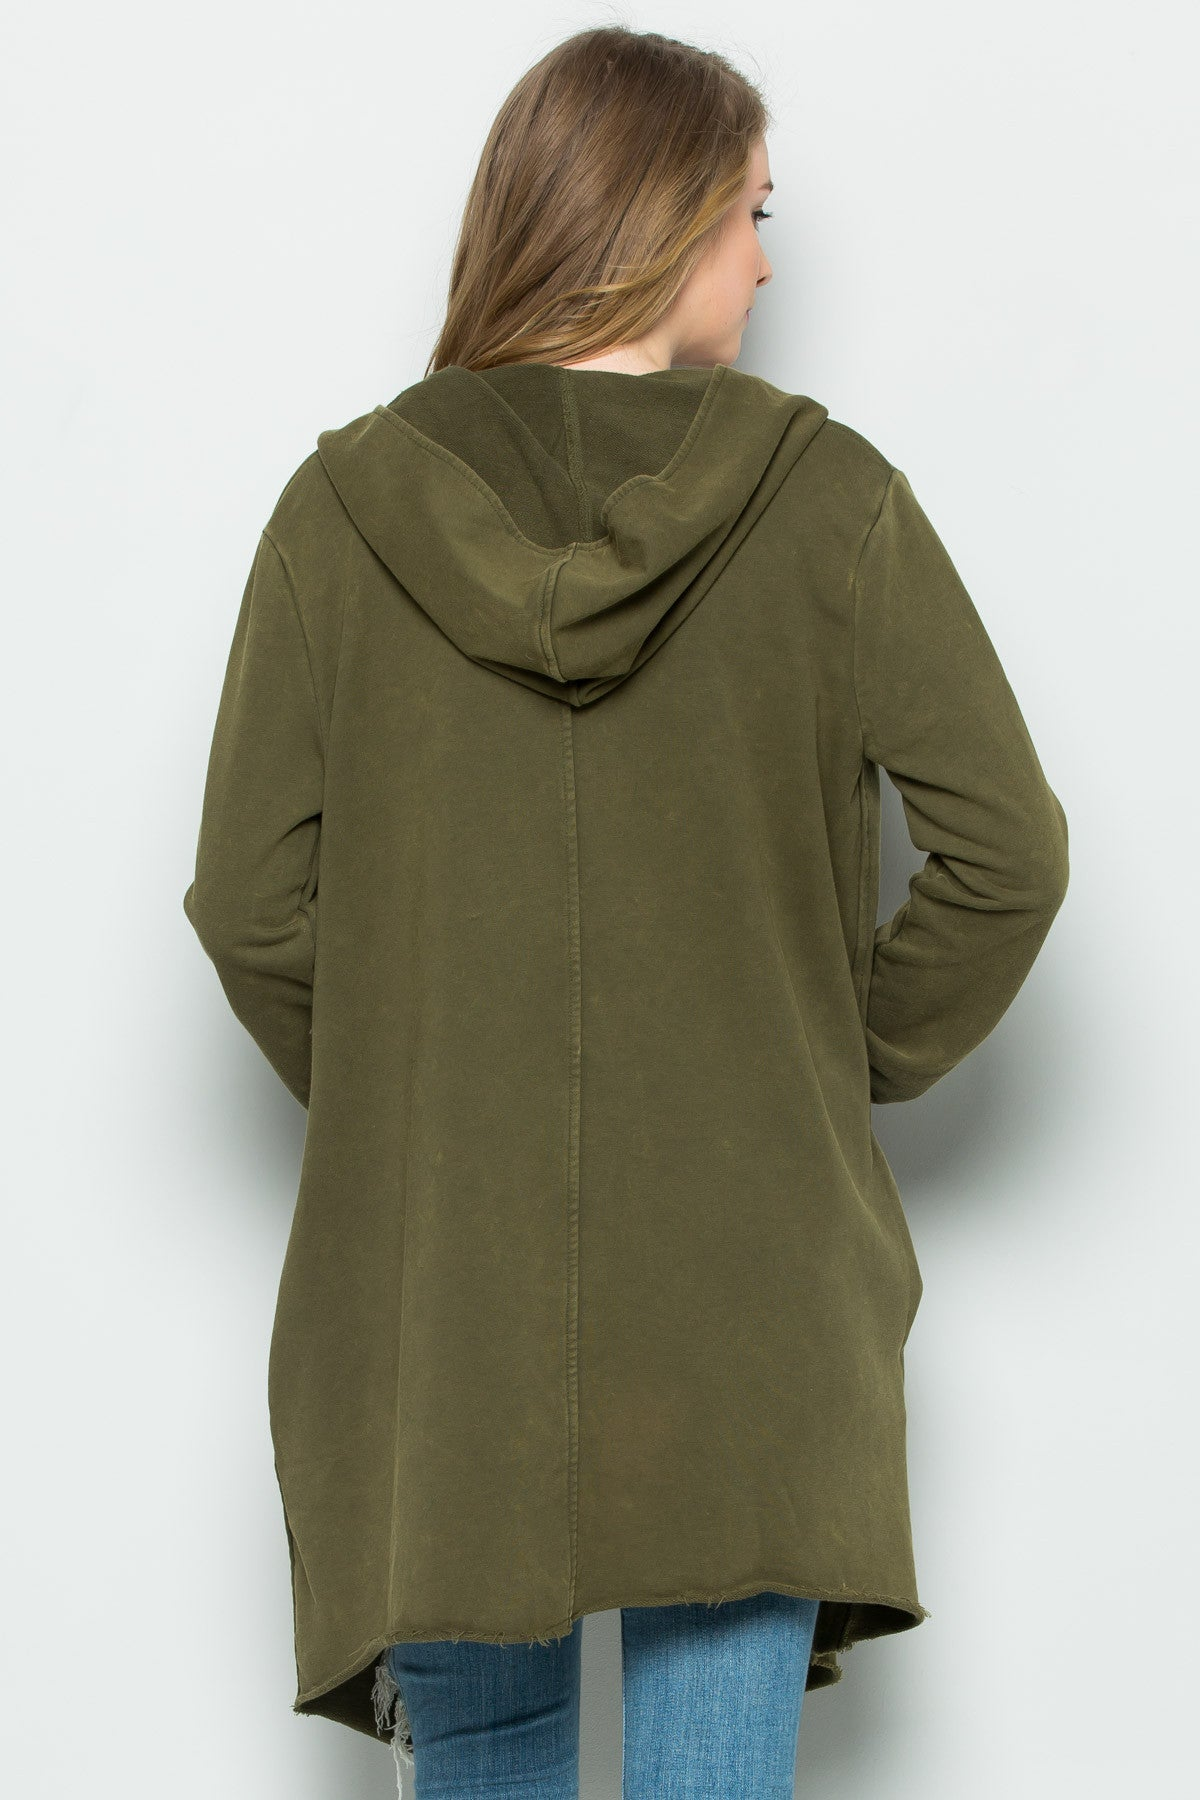 Hooded Asymmetric Zip Up Acid Wash Jacket in Military Green - Jacket - My Yuccie - 4